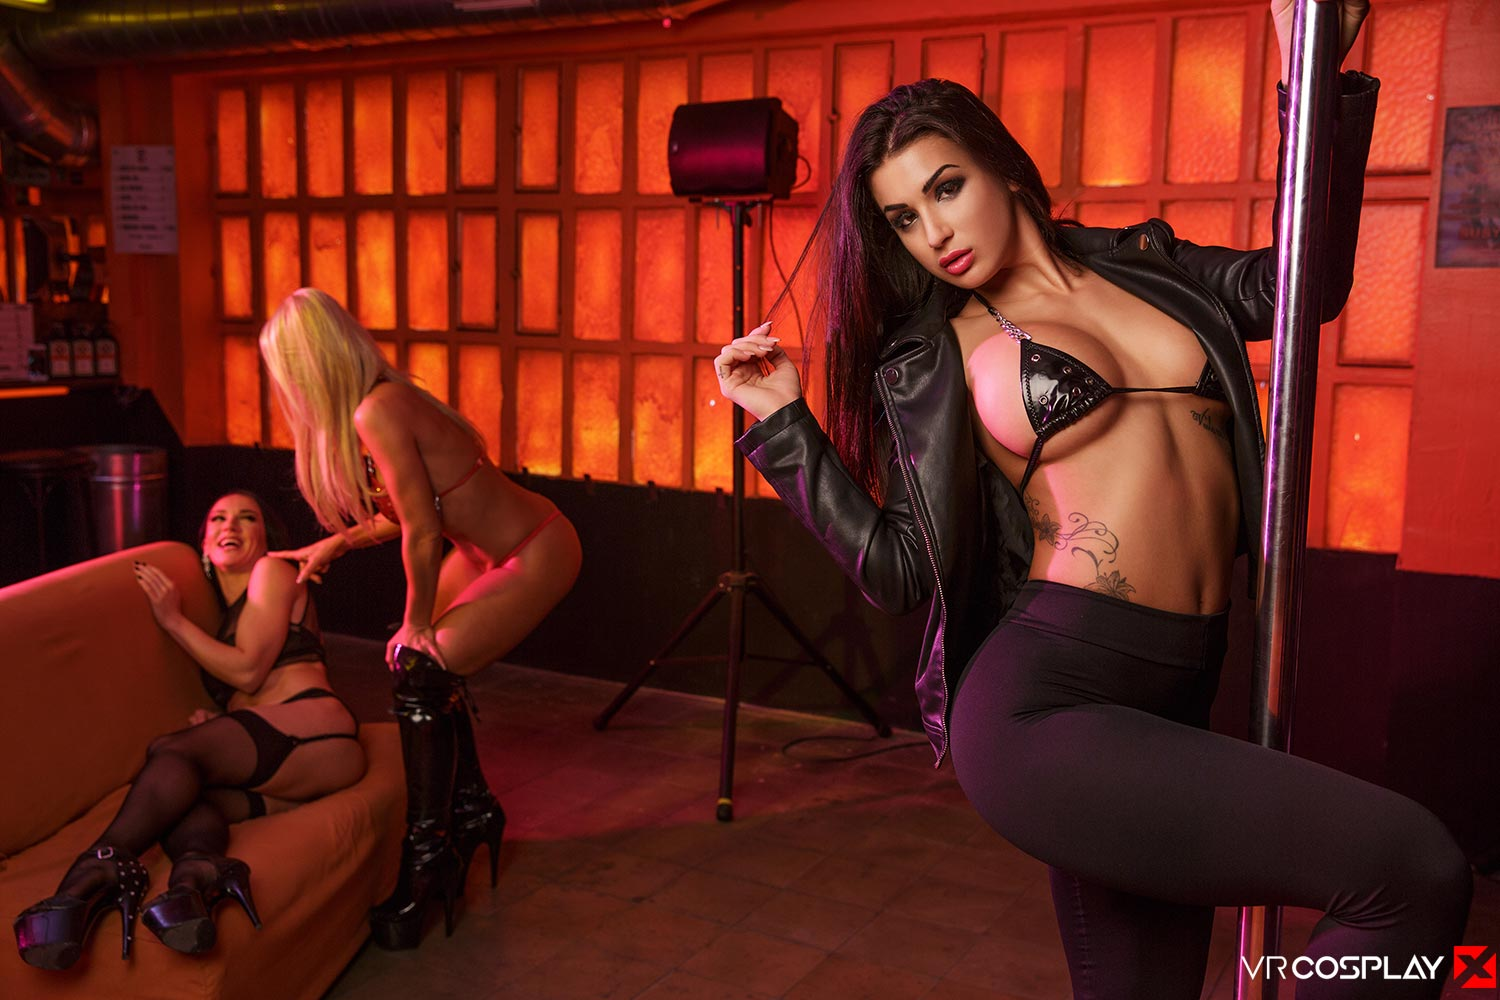 gta vr cosplay sex in the strip clubmobilevrxxx